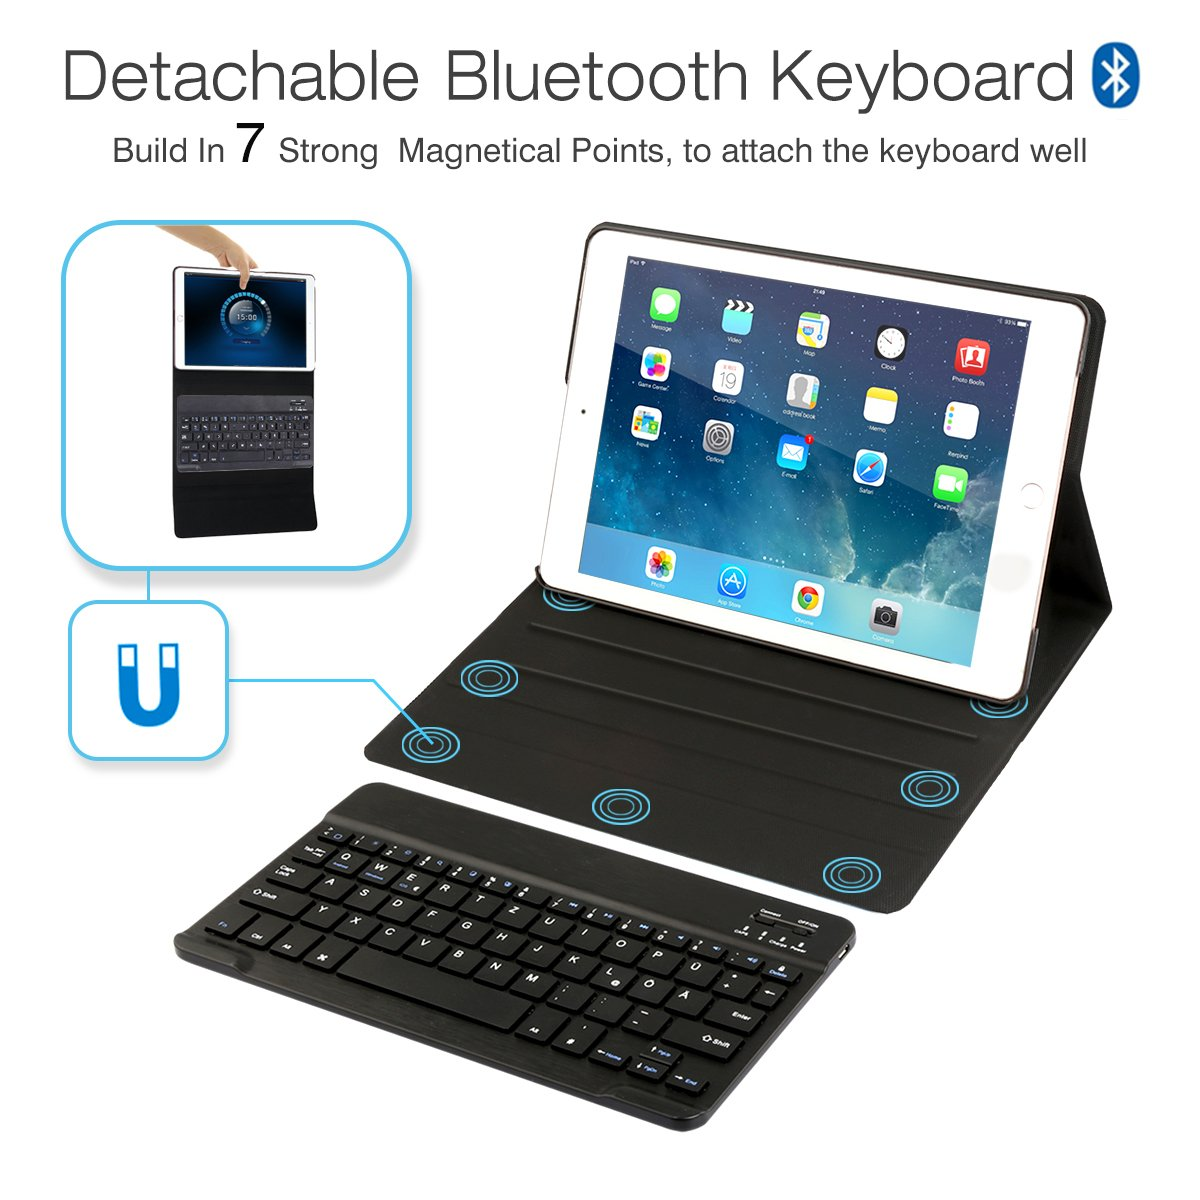 AntArt 10.5 Leather case + Wireless Bluetooth American English ABS Brushed Keyboard for iOS, Android Windows by AntArt (Image #3)